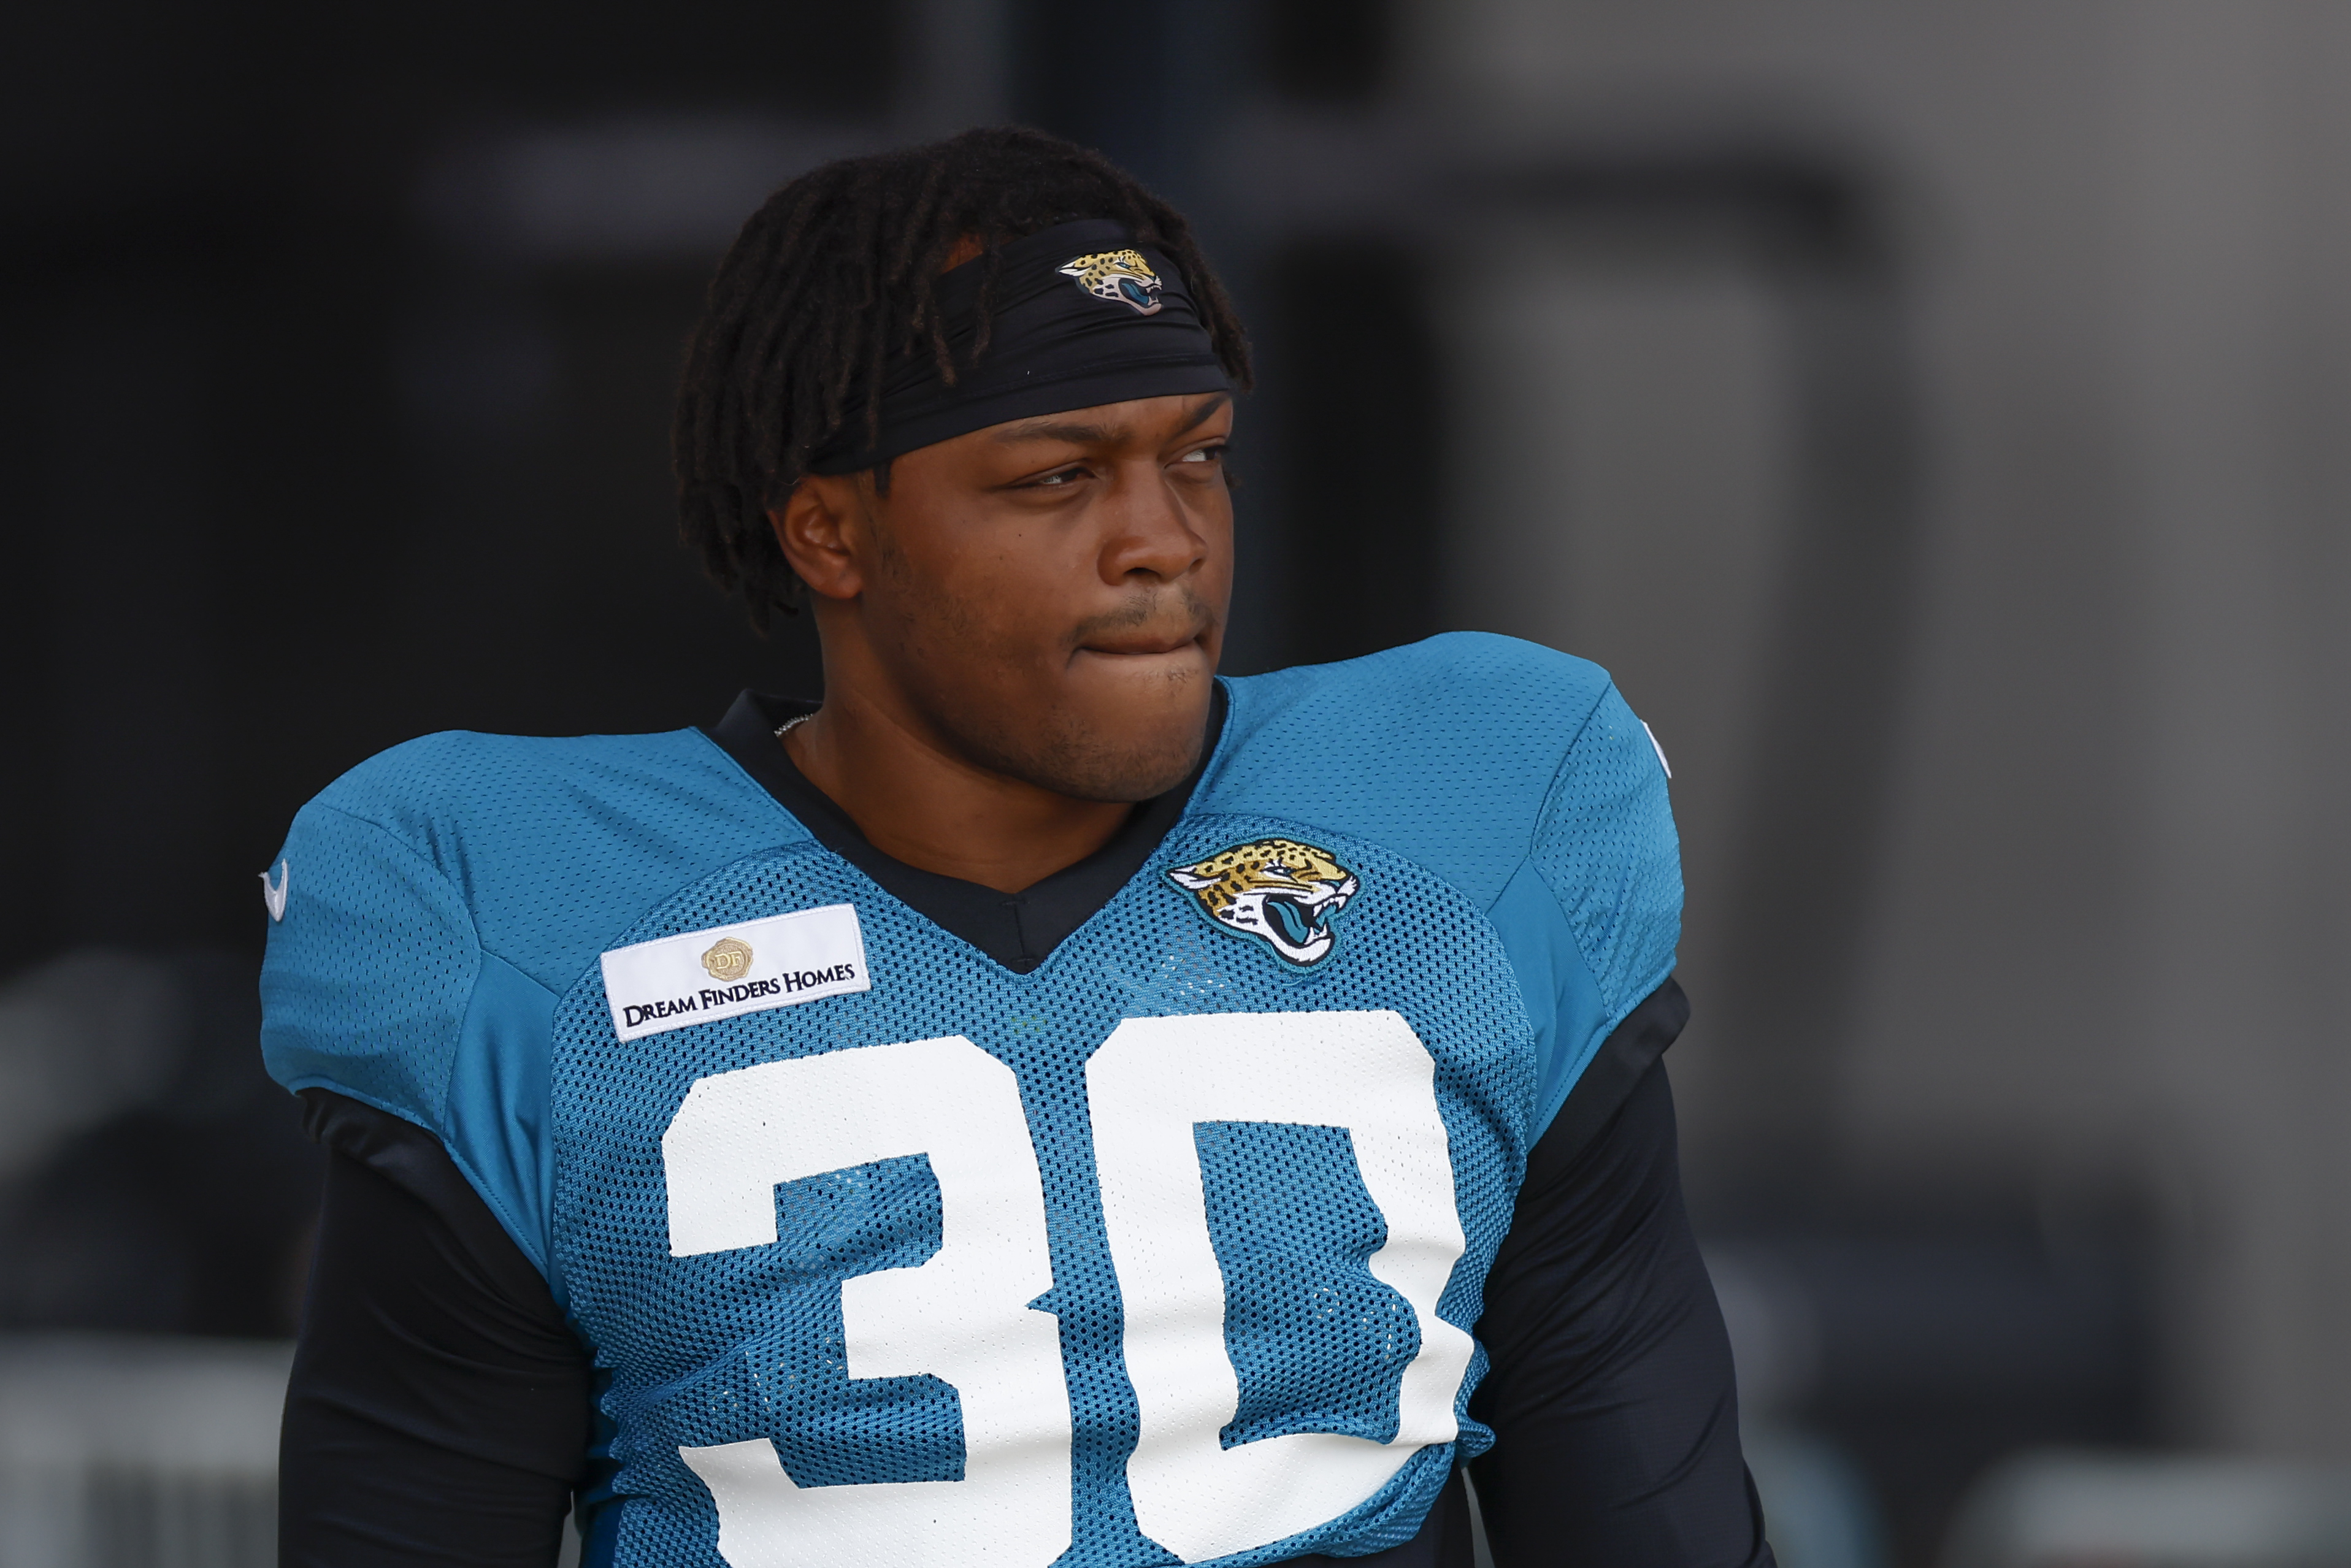 Jacksonville Jaguars Running Back James Robinson (30) during training camp on August 3, 2021 at DreamFinders Homes Practice Complex in Jacksonville, Fl.